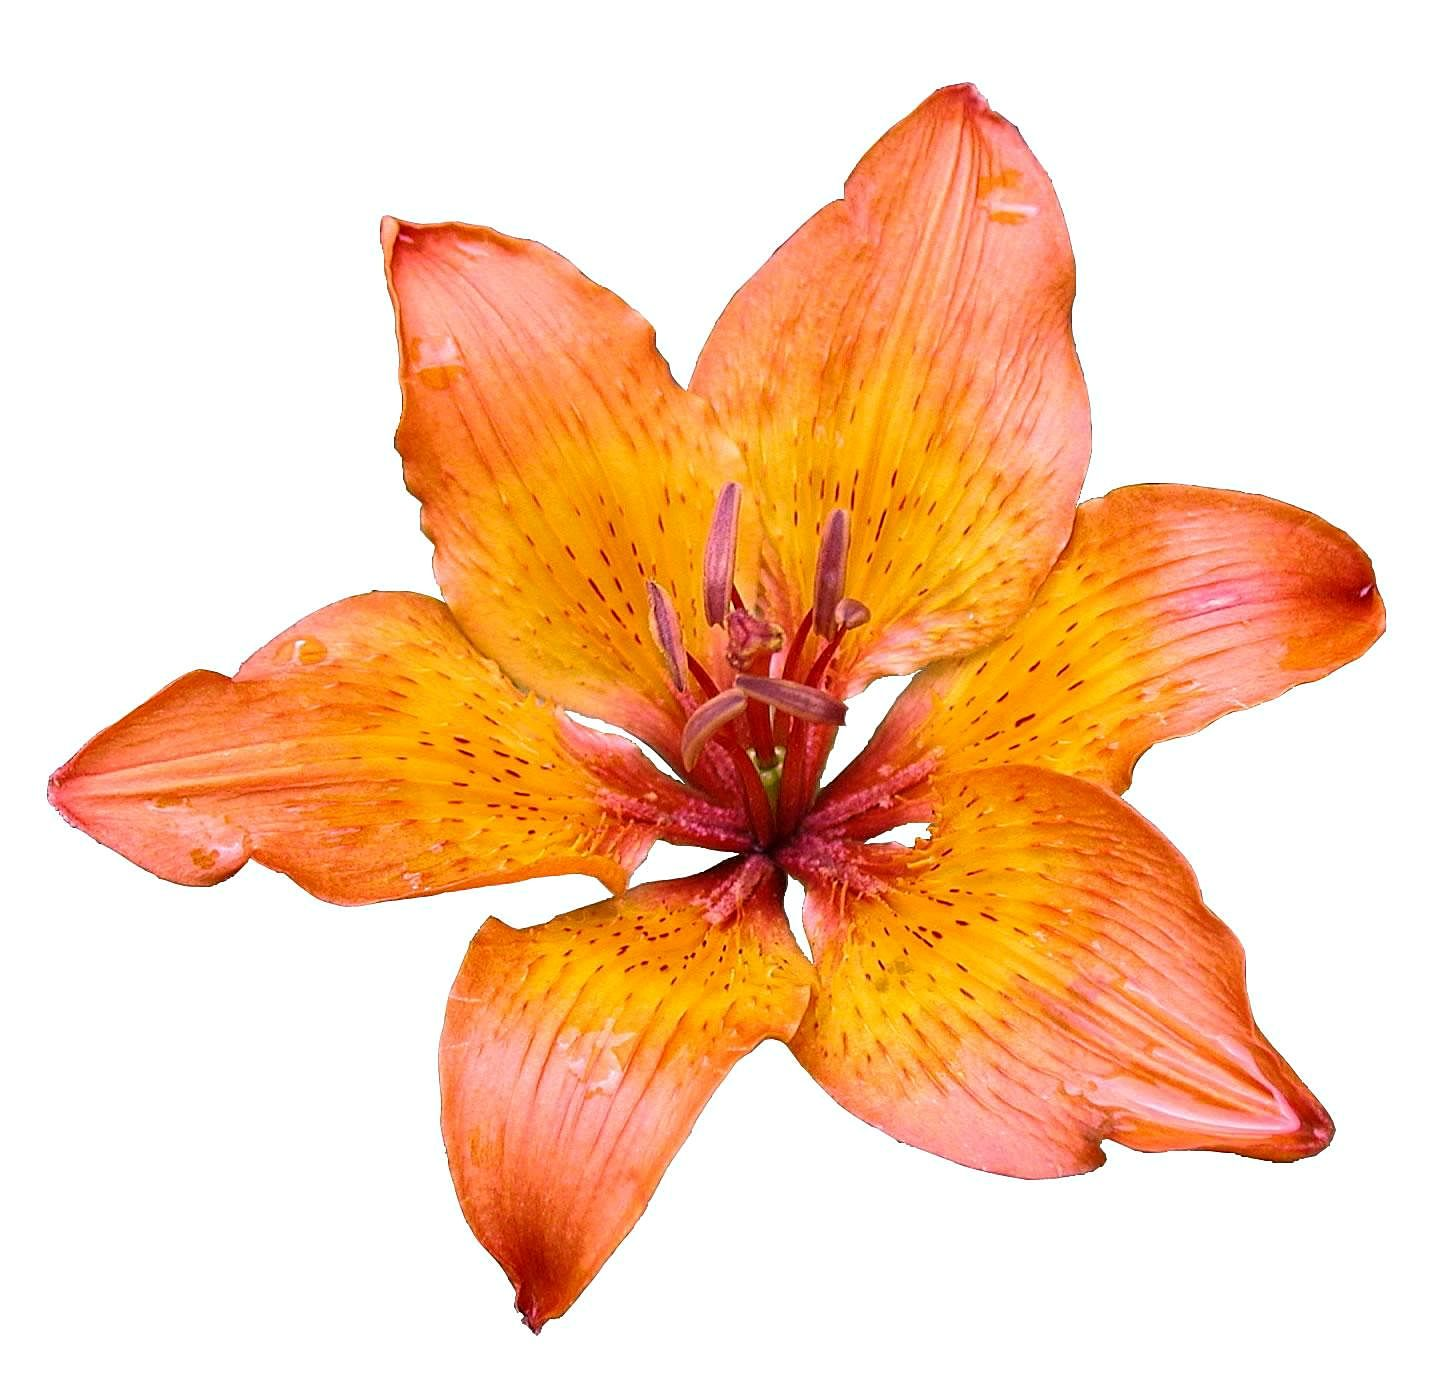 Free picture lily flower white background lily flower white background mightylinksfo